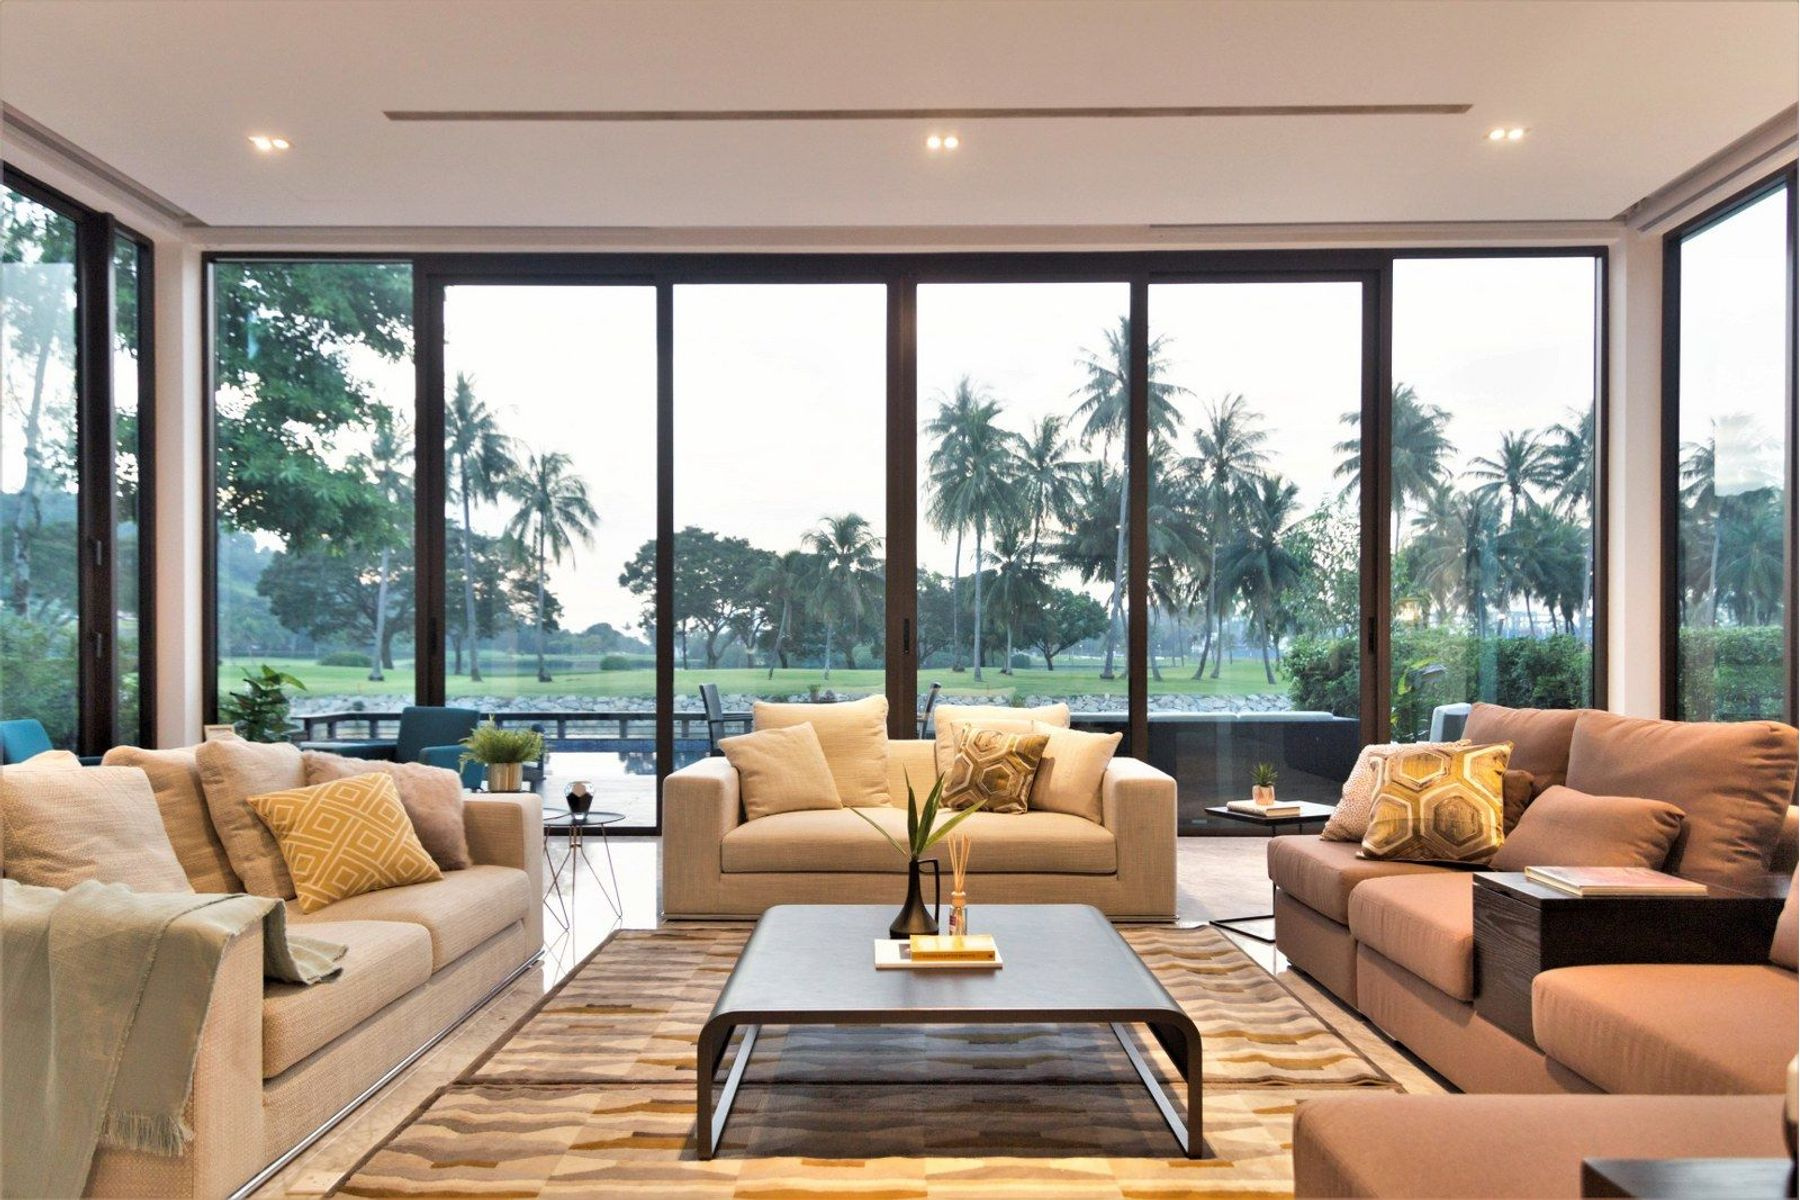 Property for Sale at Kasara Villas 43 Ocean drive Singapore, Cities In Singapore 098189 Singapore